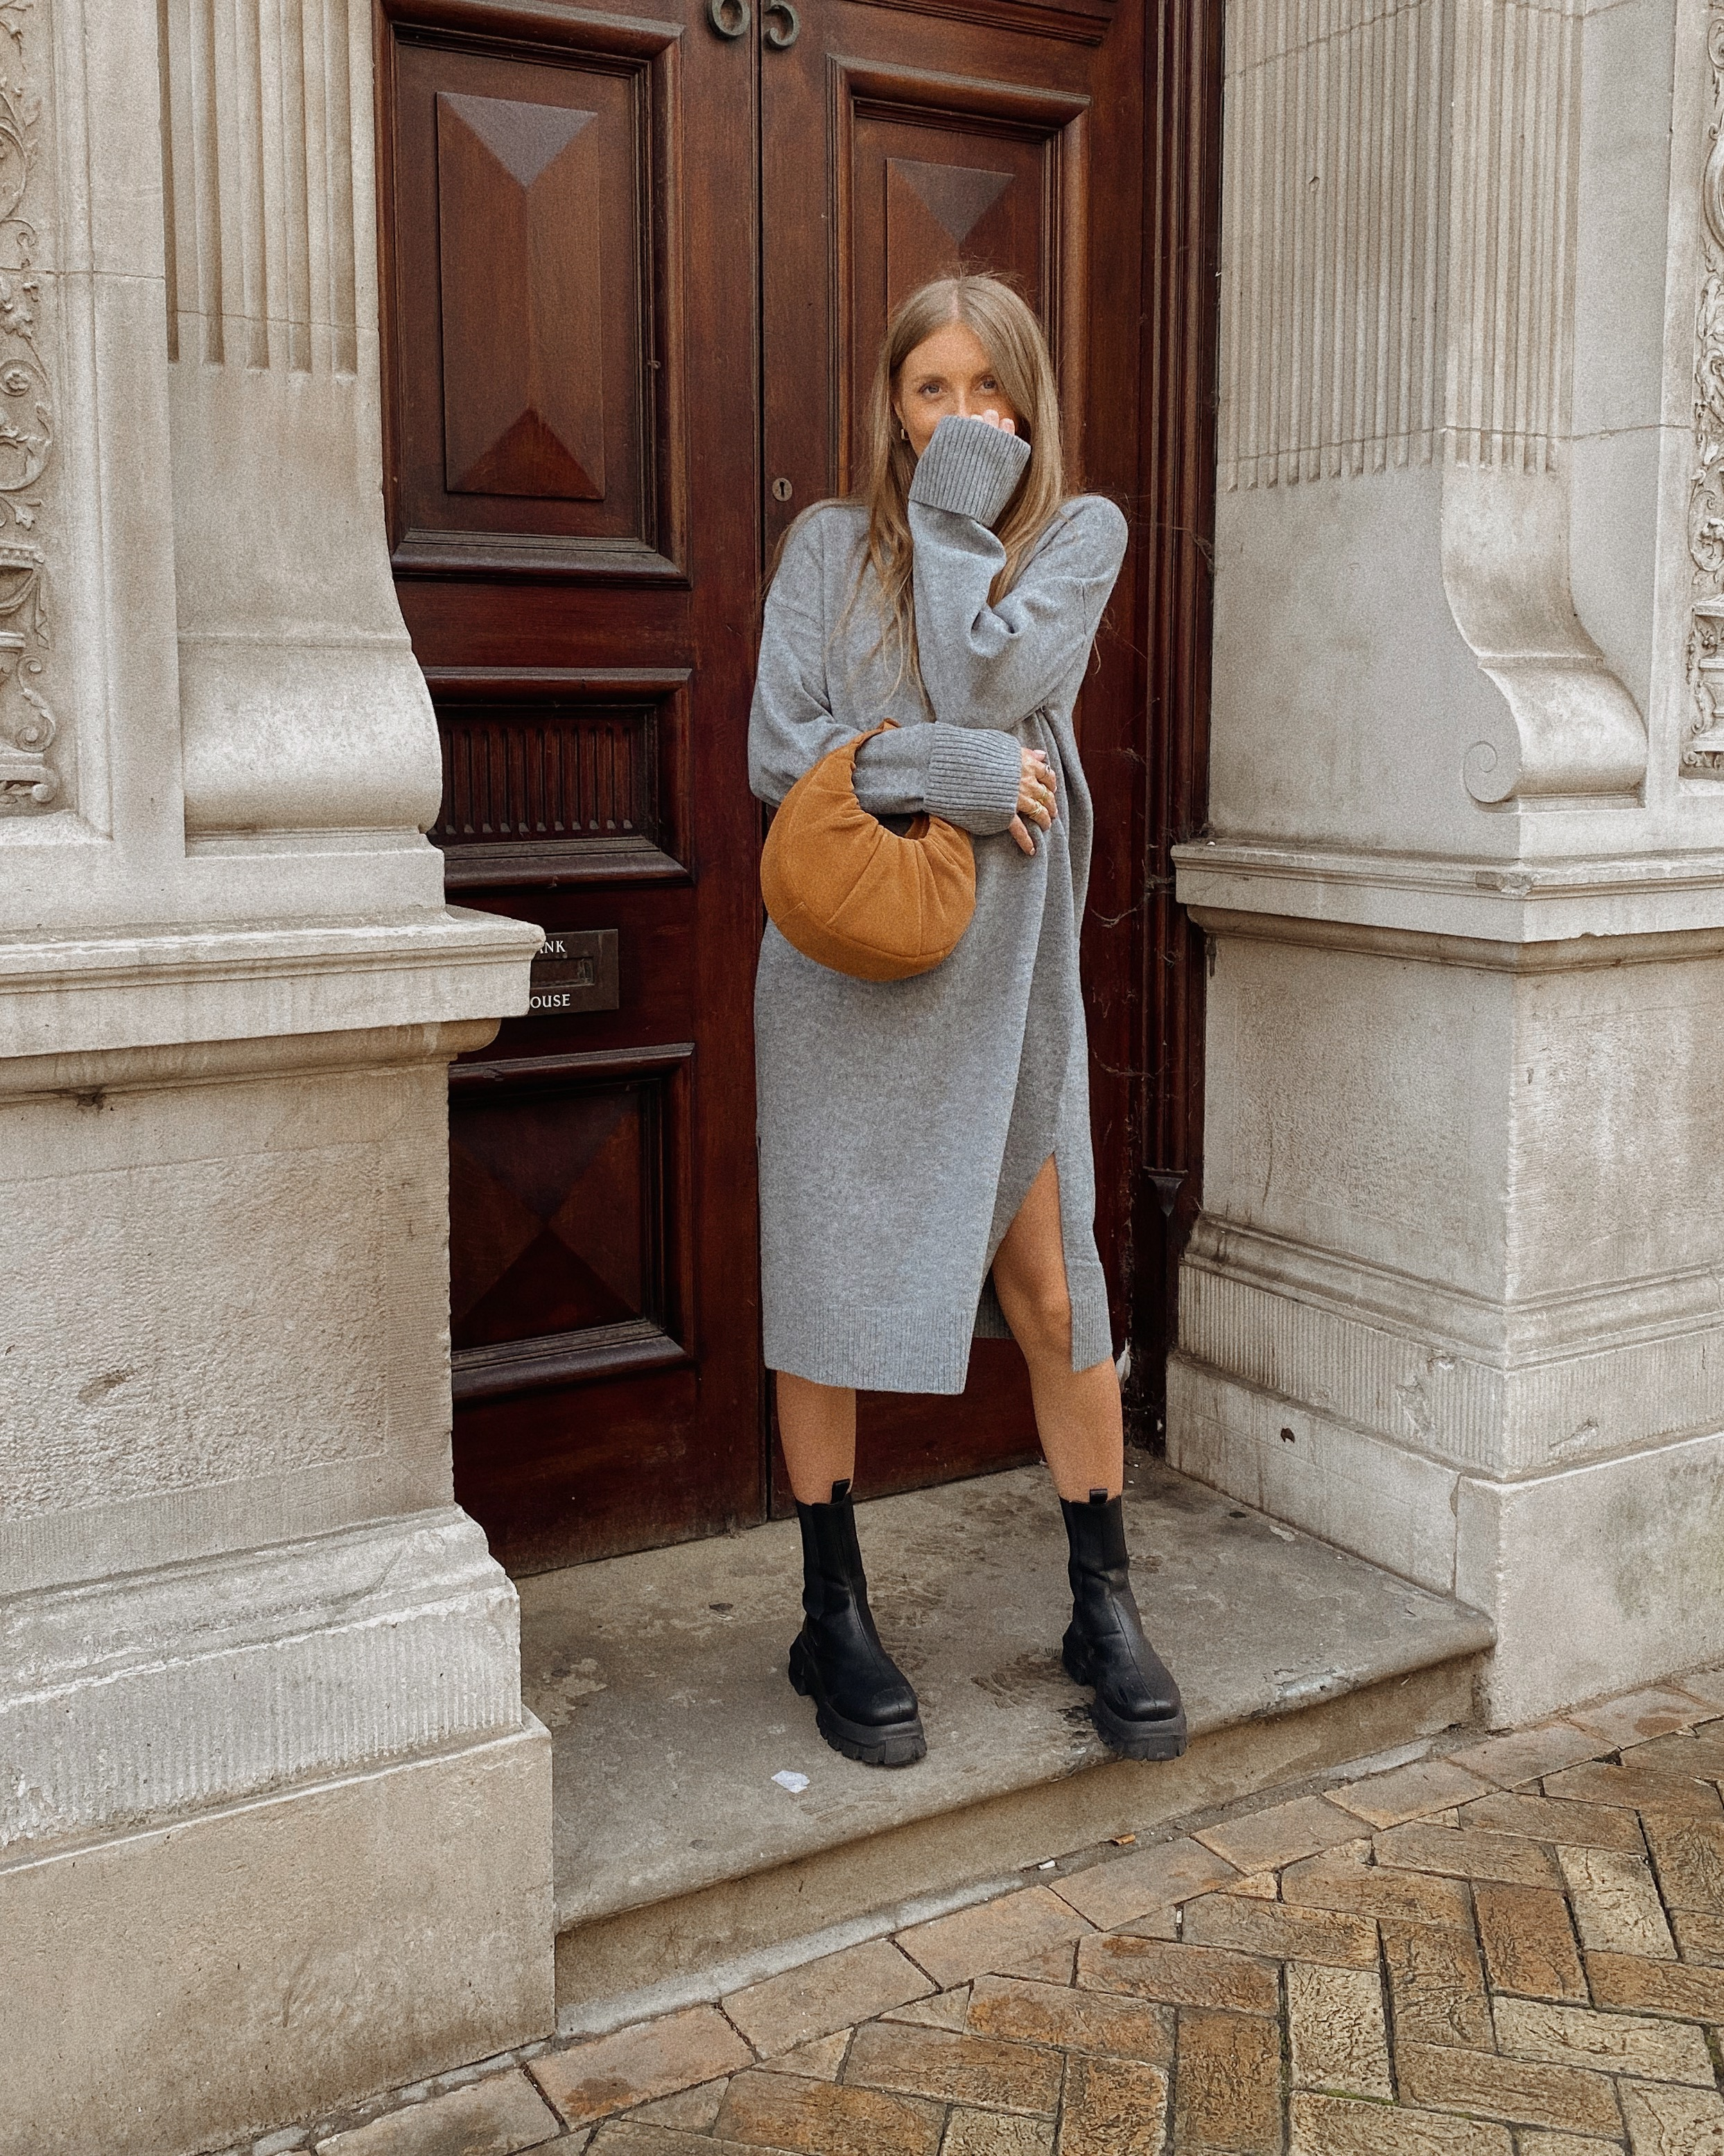 Jumper Dress Outfit Ideas - Winter Outfit Ideas